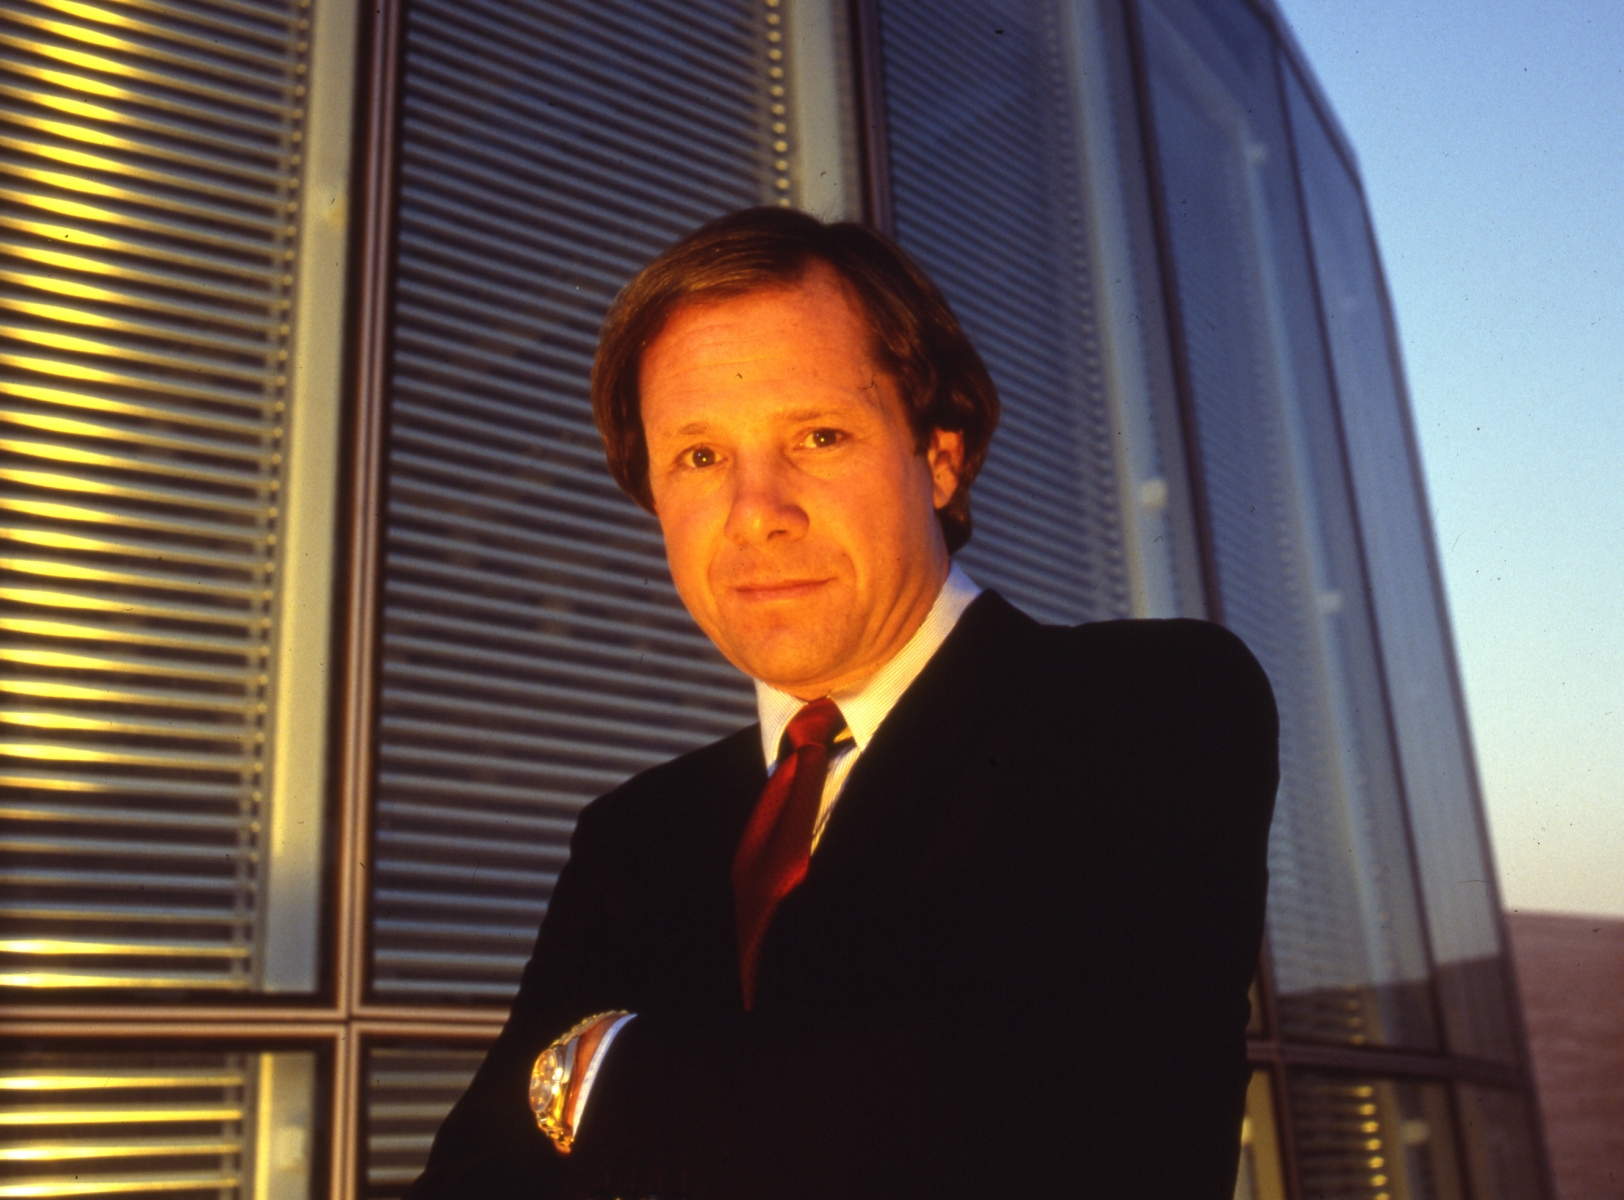 Michael Ovitz, co-founder the Creative Artists Agency, Los Angeles, California, 1987. (Photo by Anthony Barboza/Getty Images)